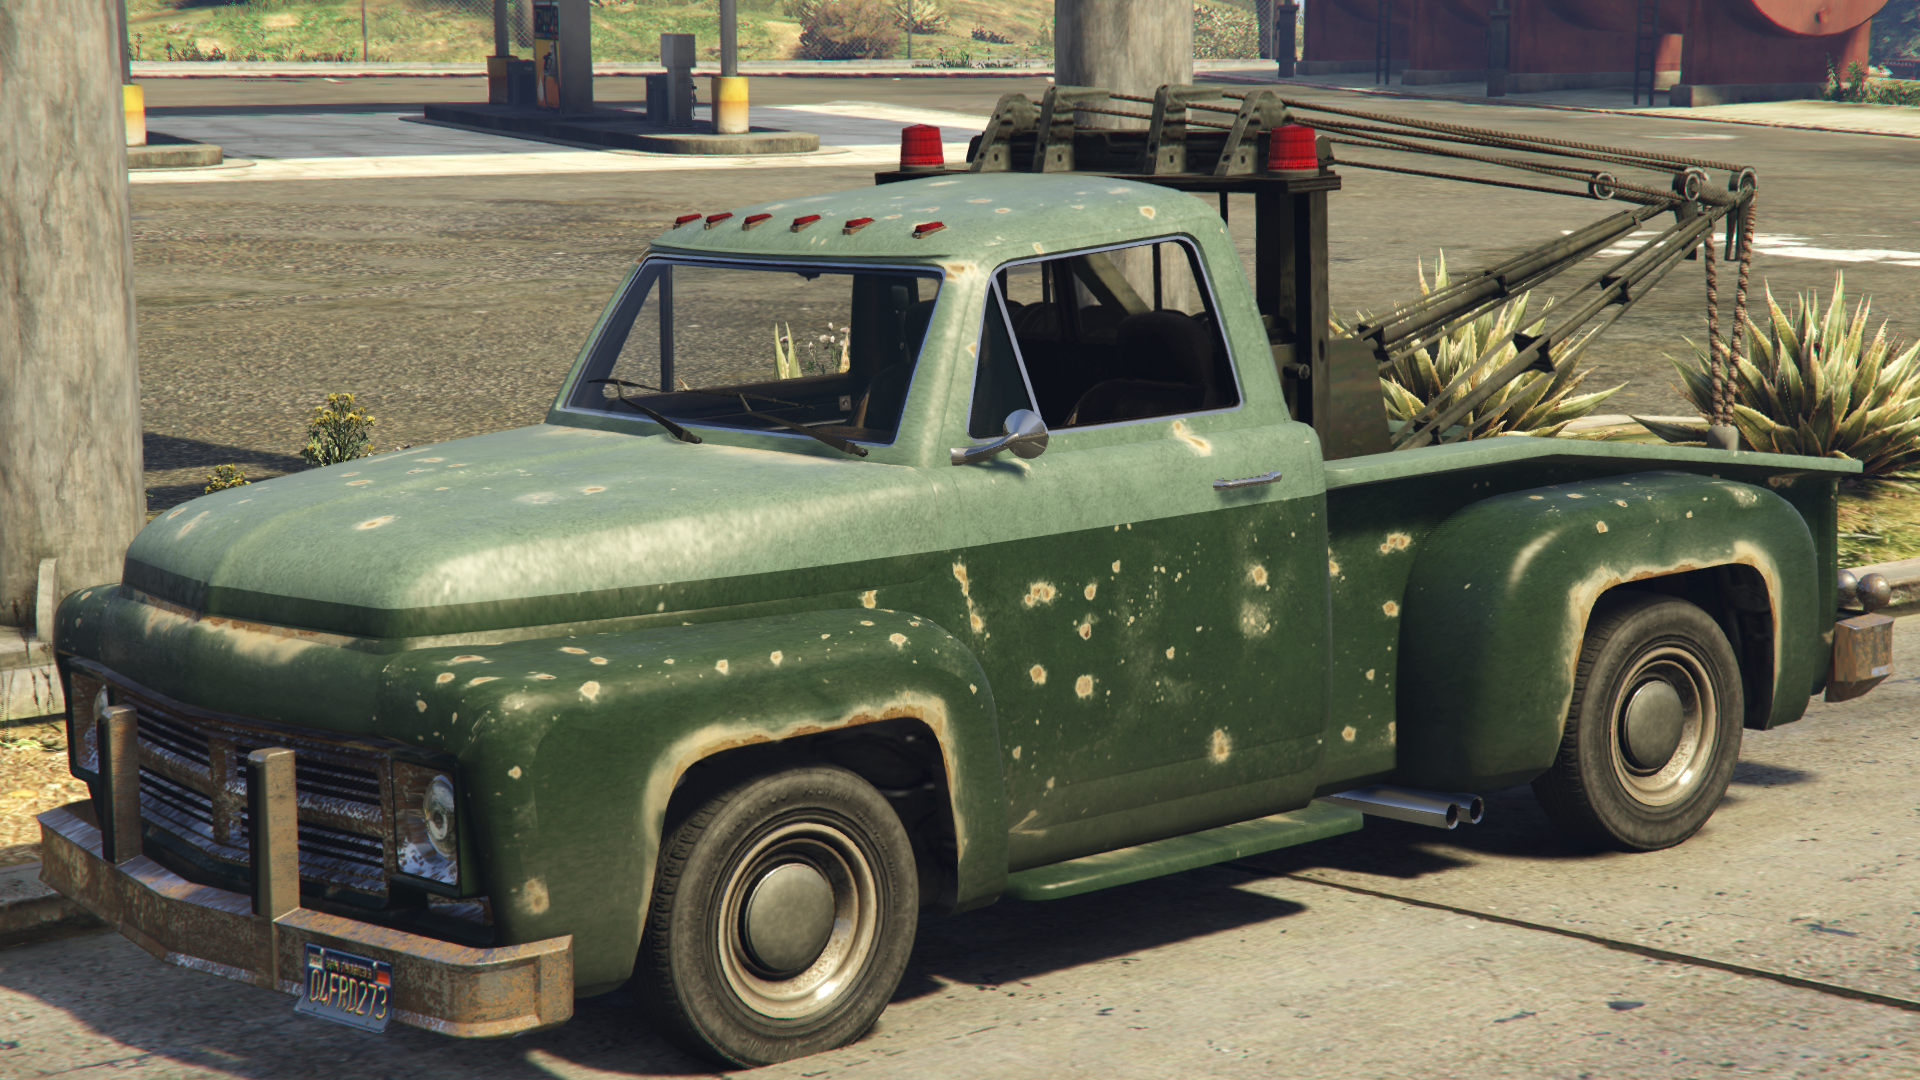 Gta 5 Tow Truck Best Image 1954 Dodge Towtruck Wiki Fandom Powered By Wikia